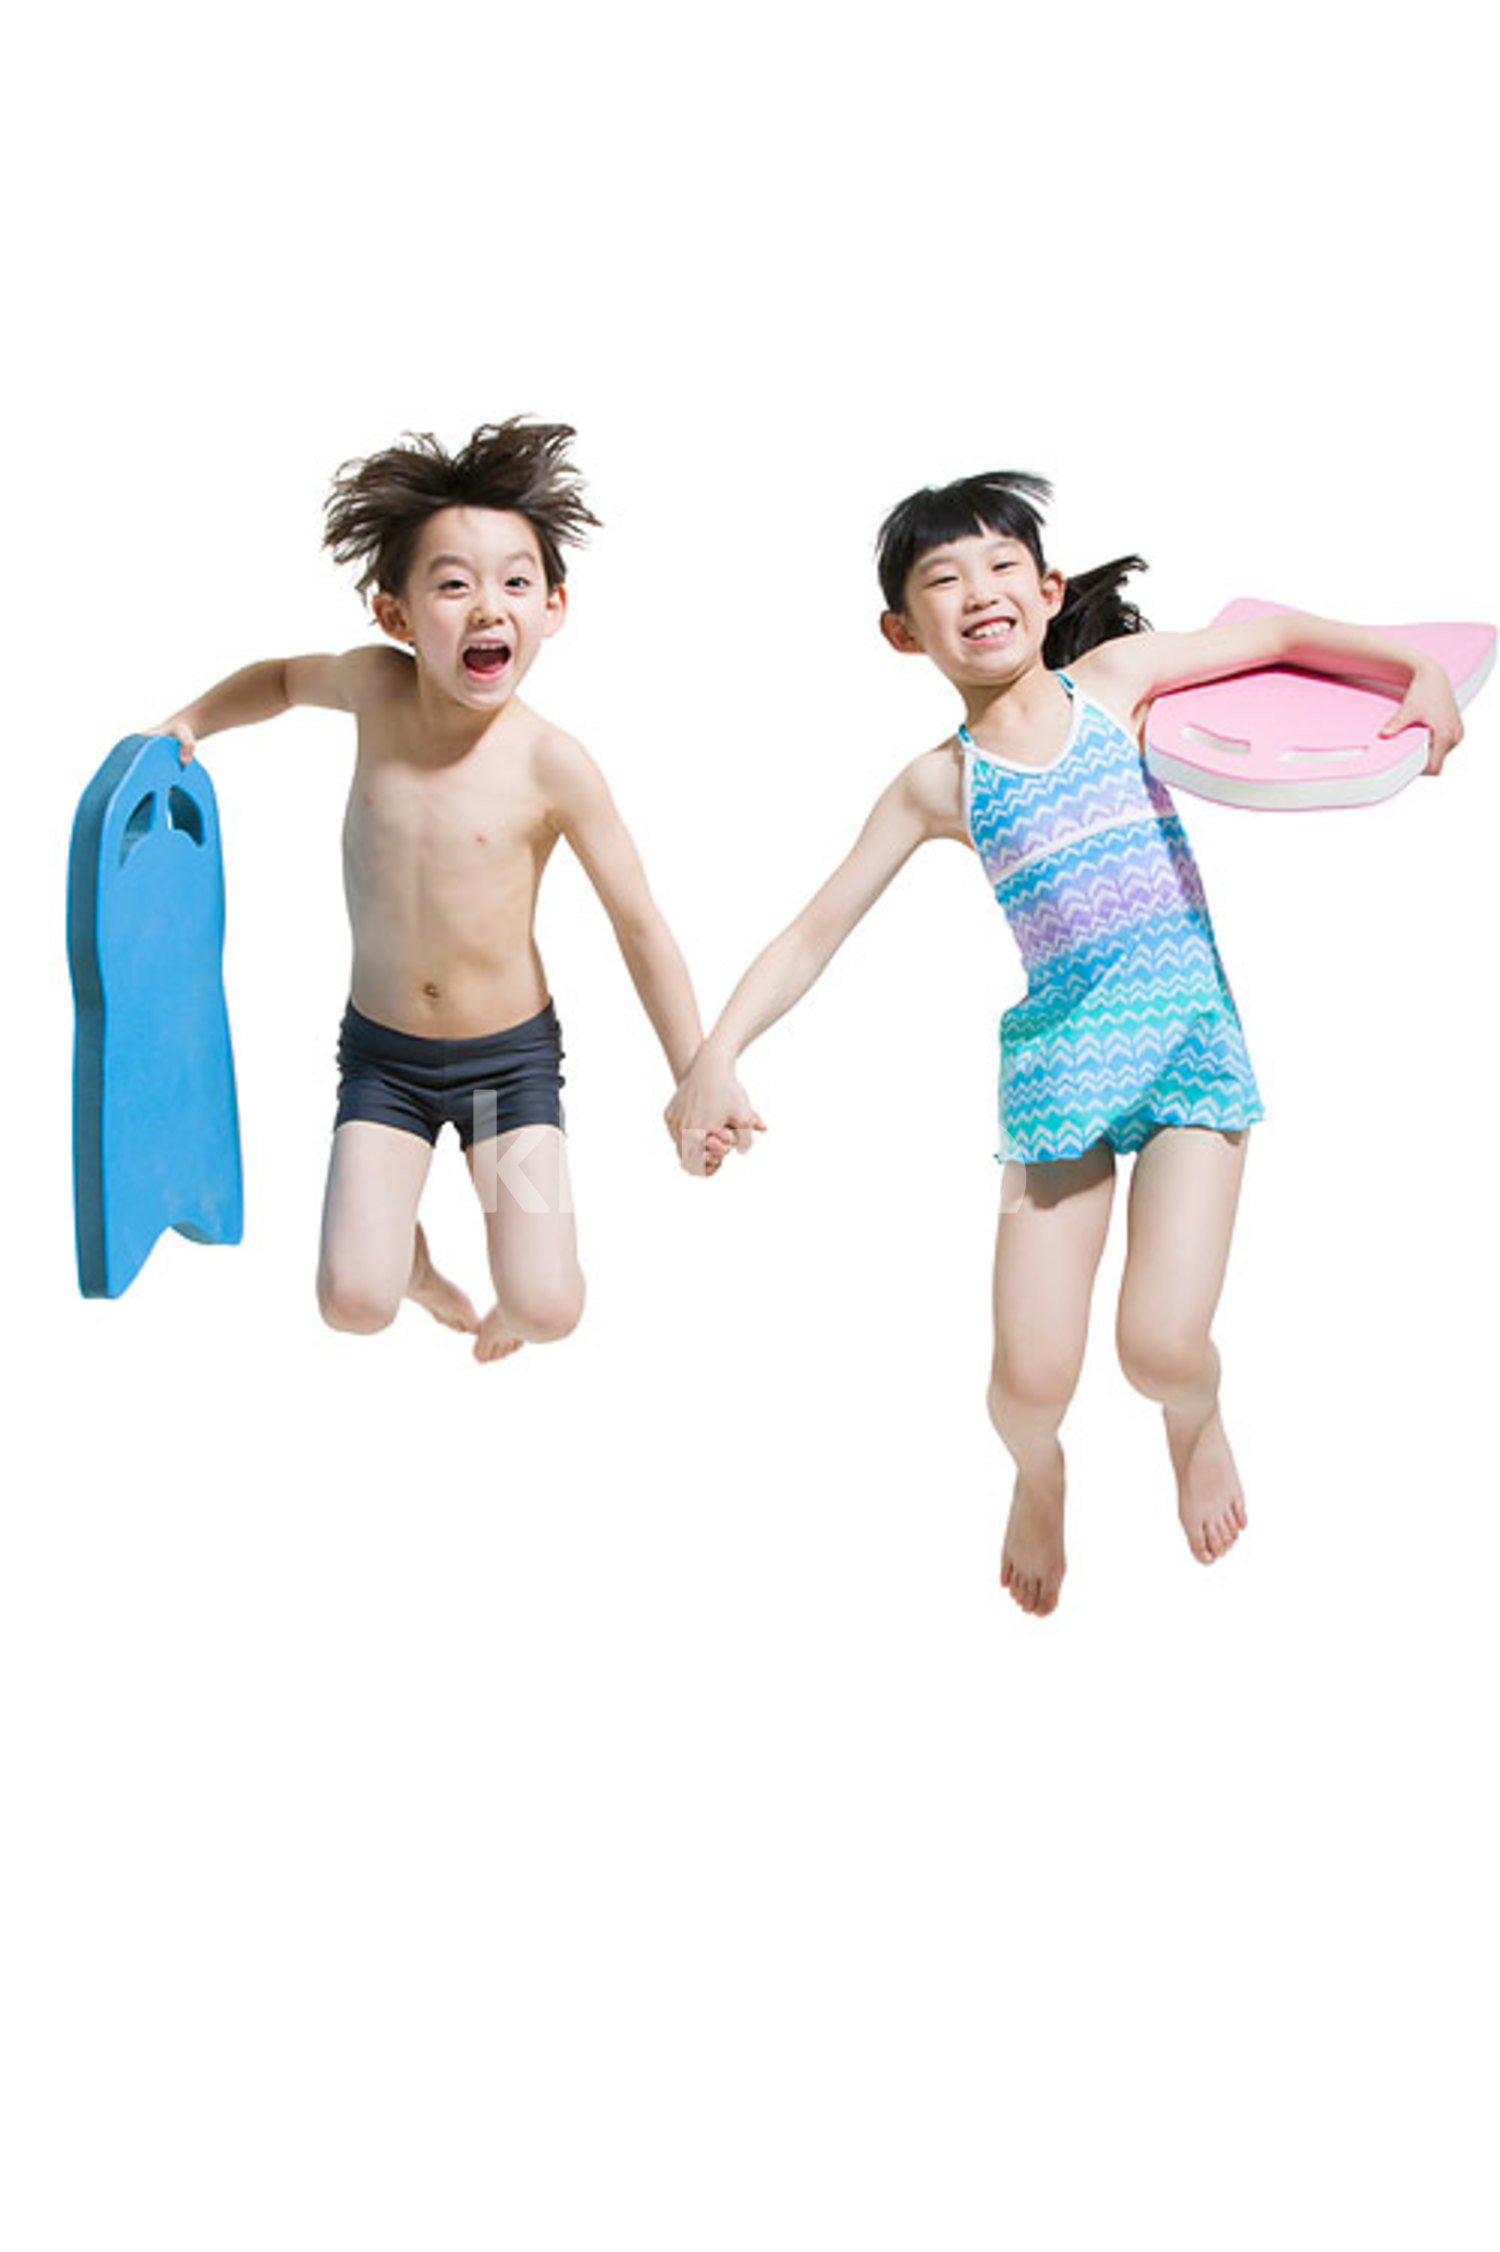 Cute Chinese children in swimsuit with kickboards